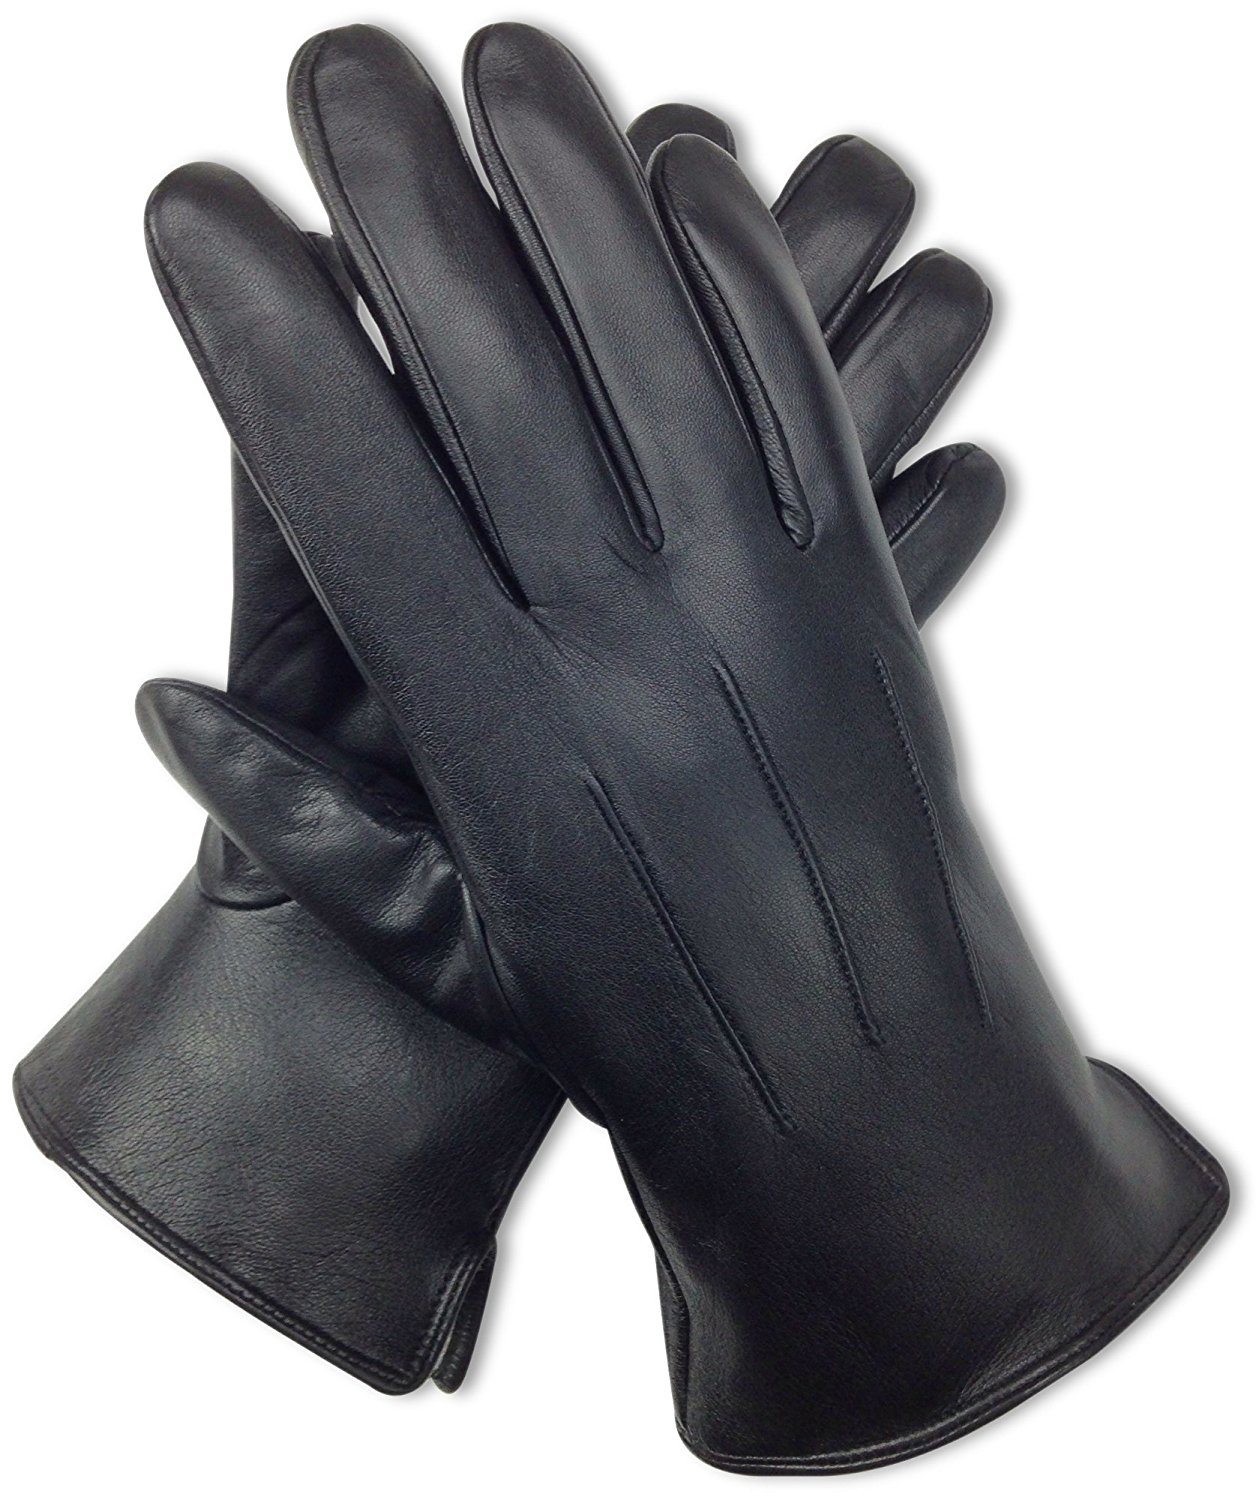 96e83a364b591 Get Quotations · Bleu Nero Luxury Soft Men's Leather Gloves – Genuine Nappa Sheepskin  Leather with Black Rabbit Fur